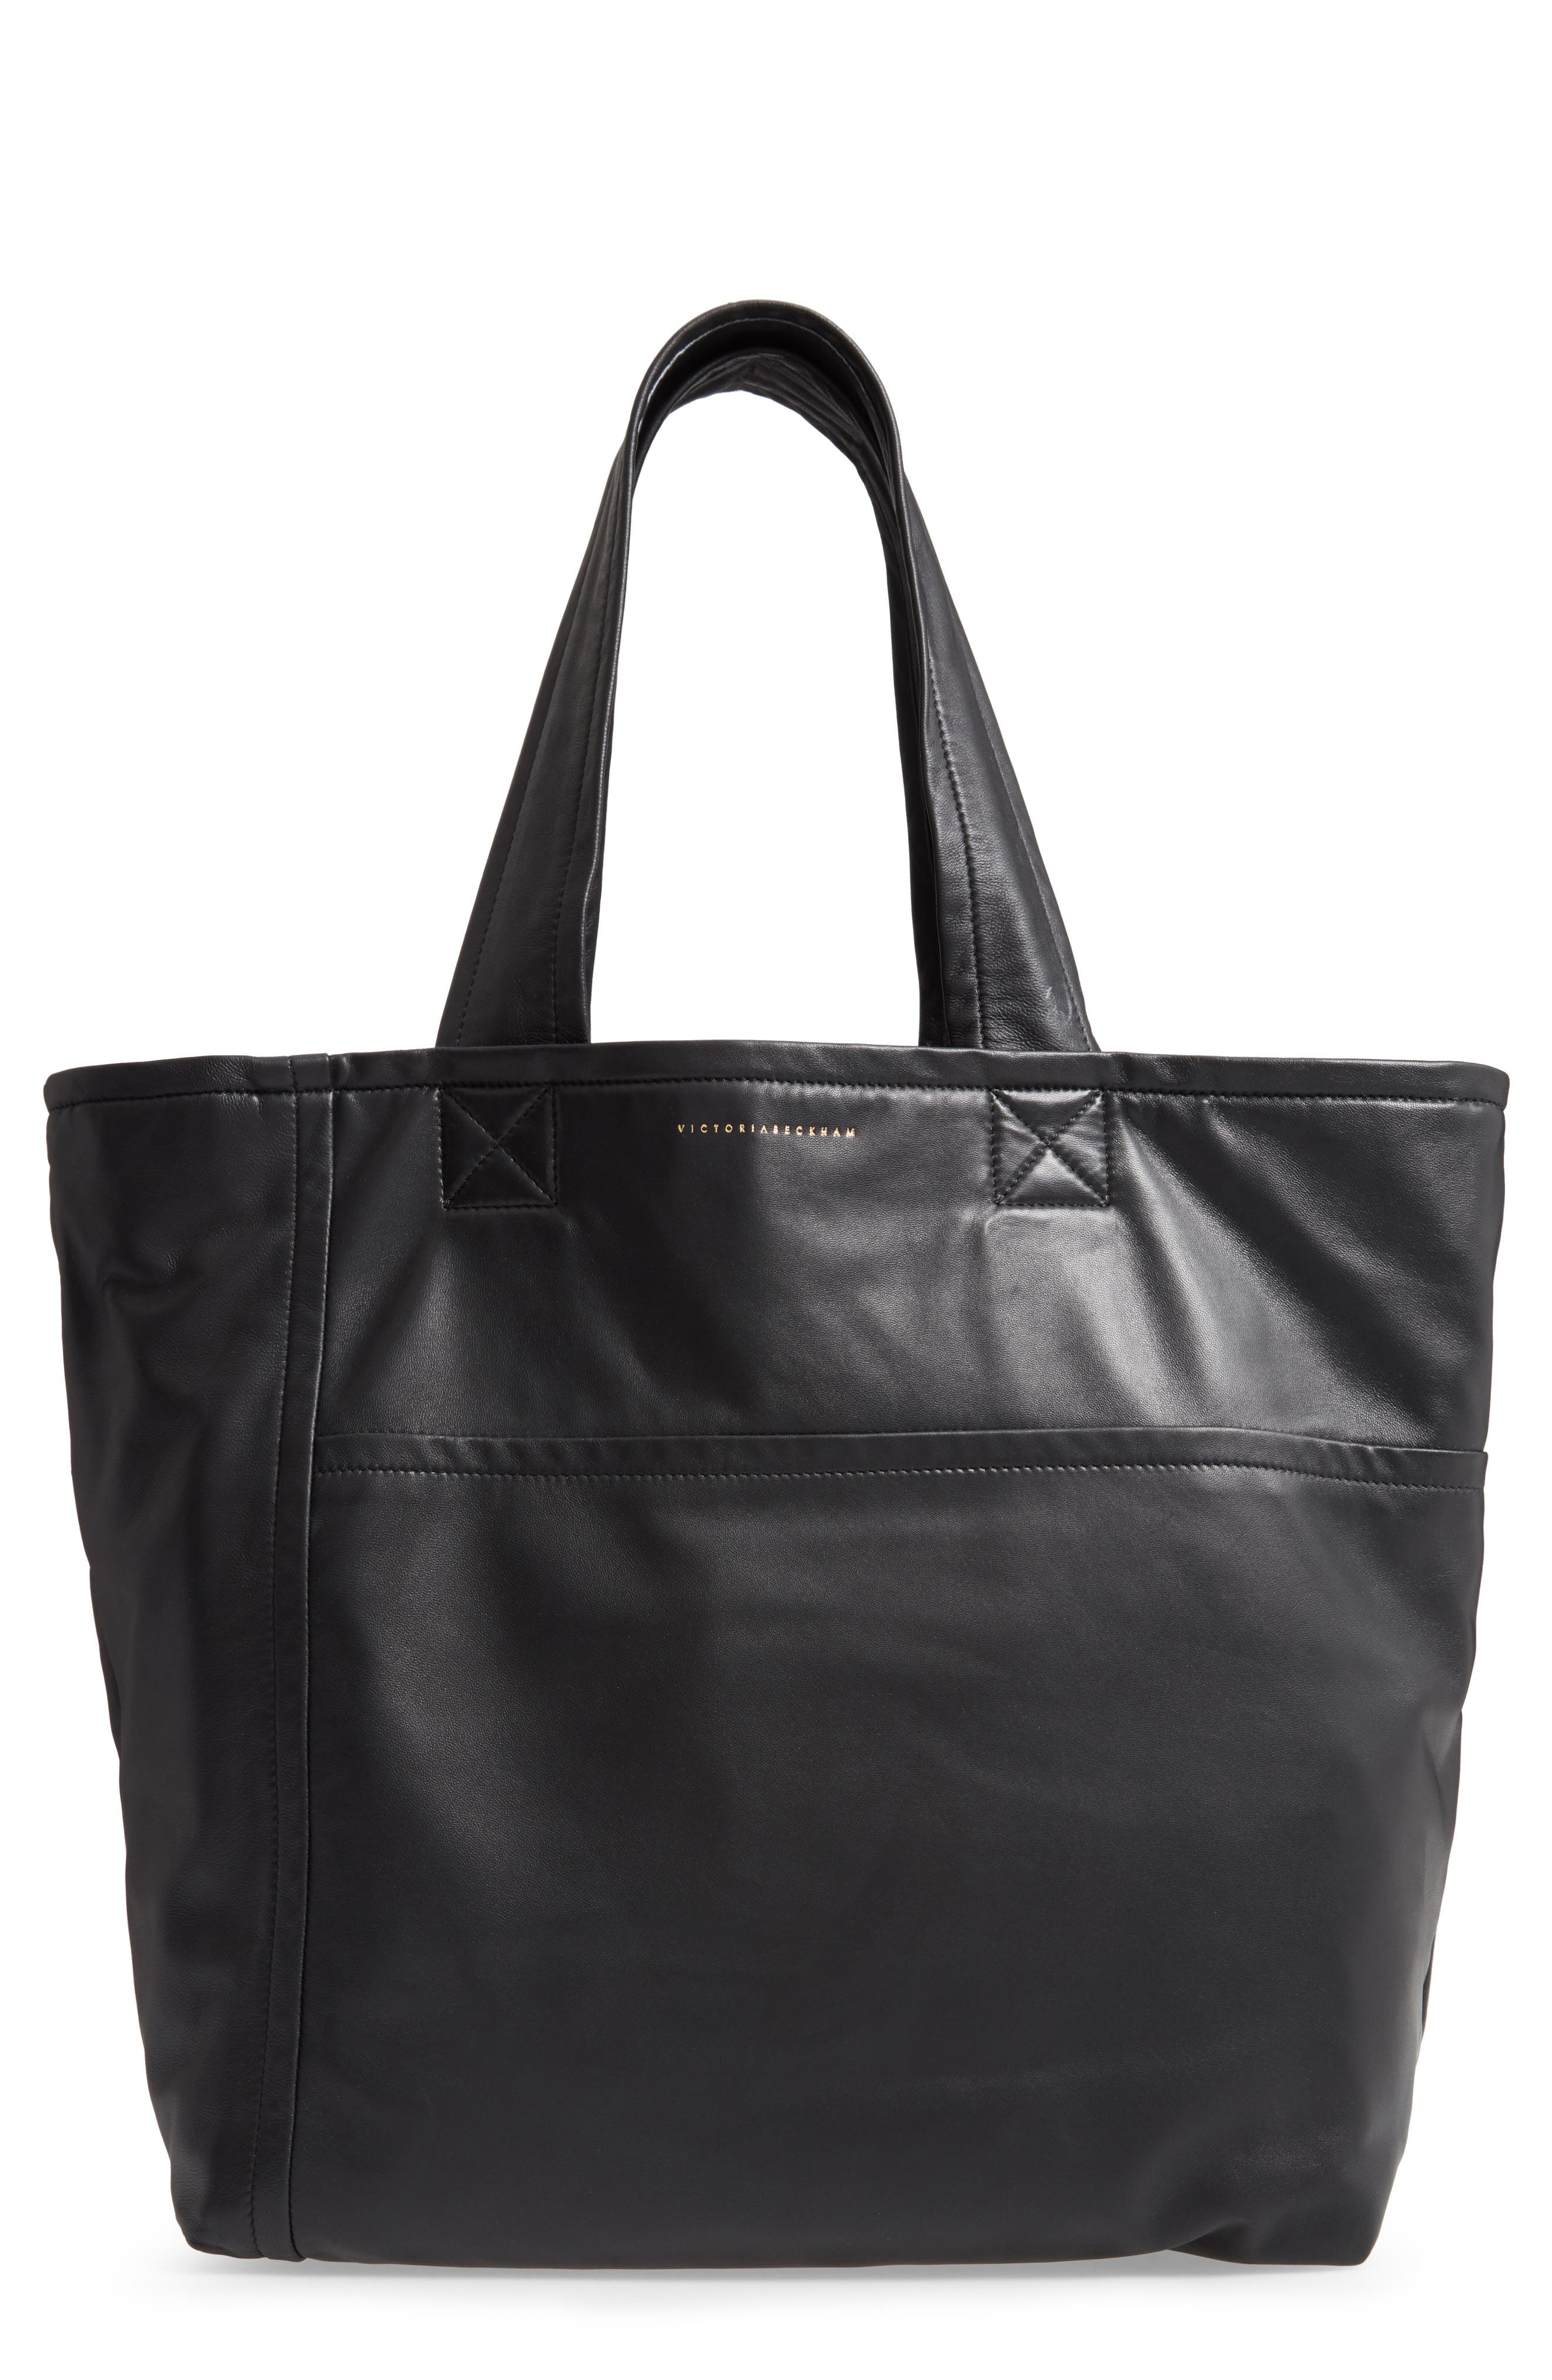 VICTORIA BECKHAM, Sunday Leather Tote Bag, Main thumbnail 1, color, 001